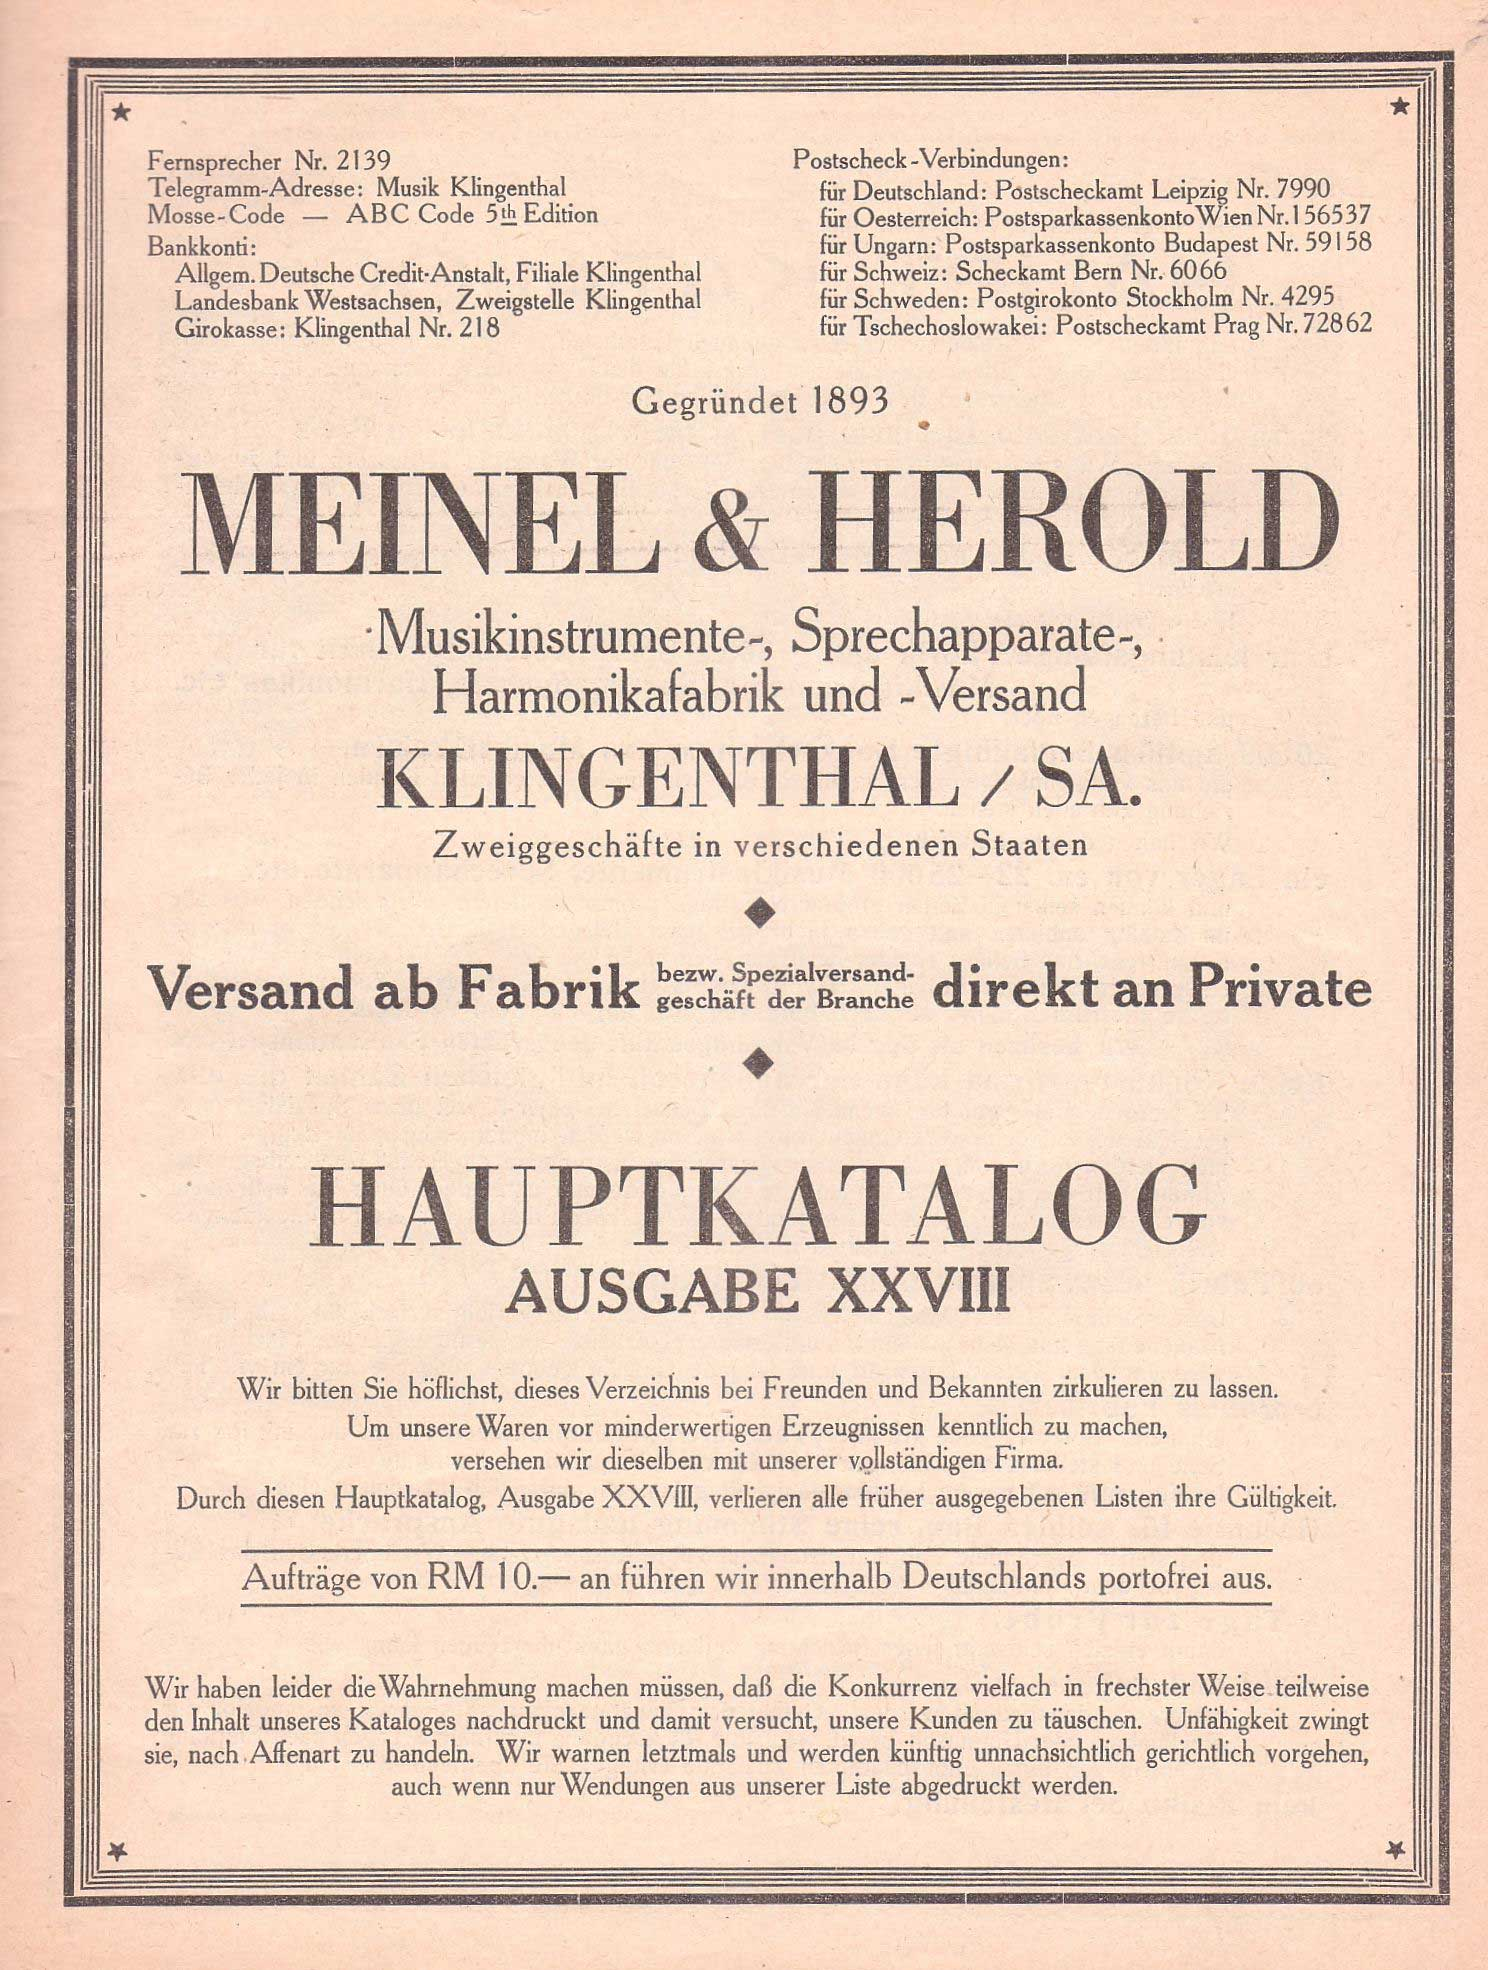 Meinel & Herold vintage catalogue, vintage musical instrument catalogue, German catalogue,